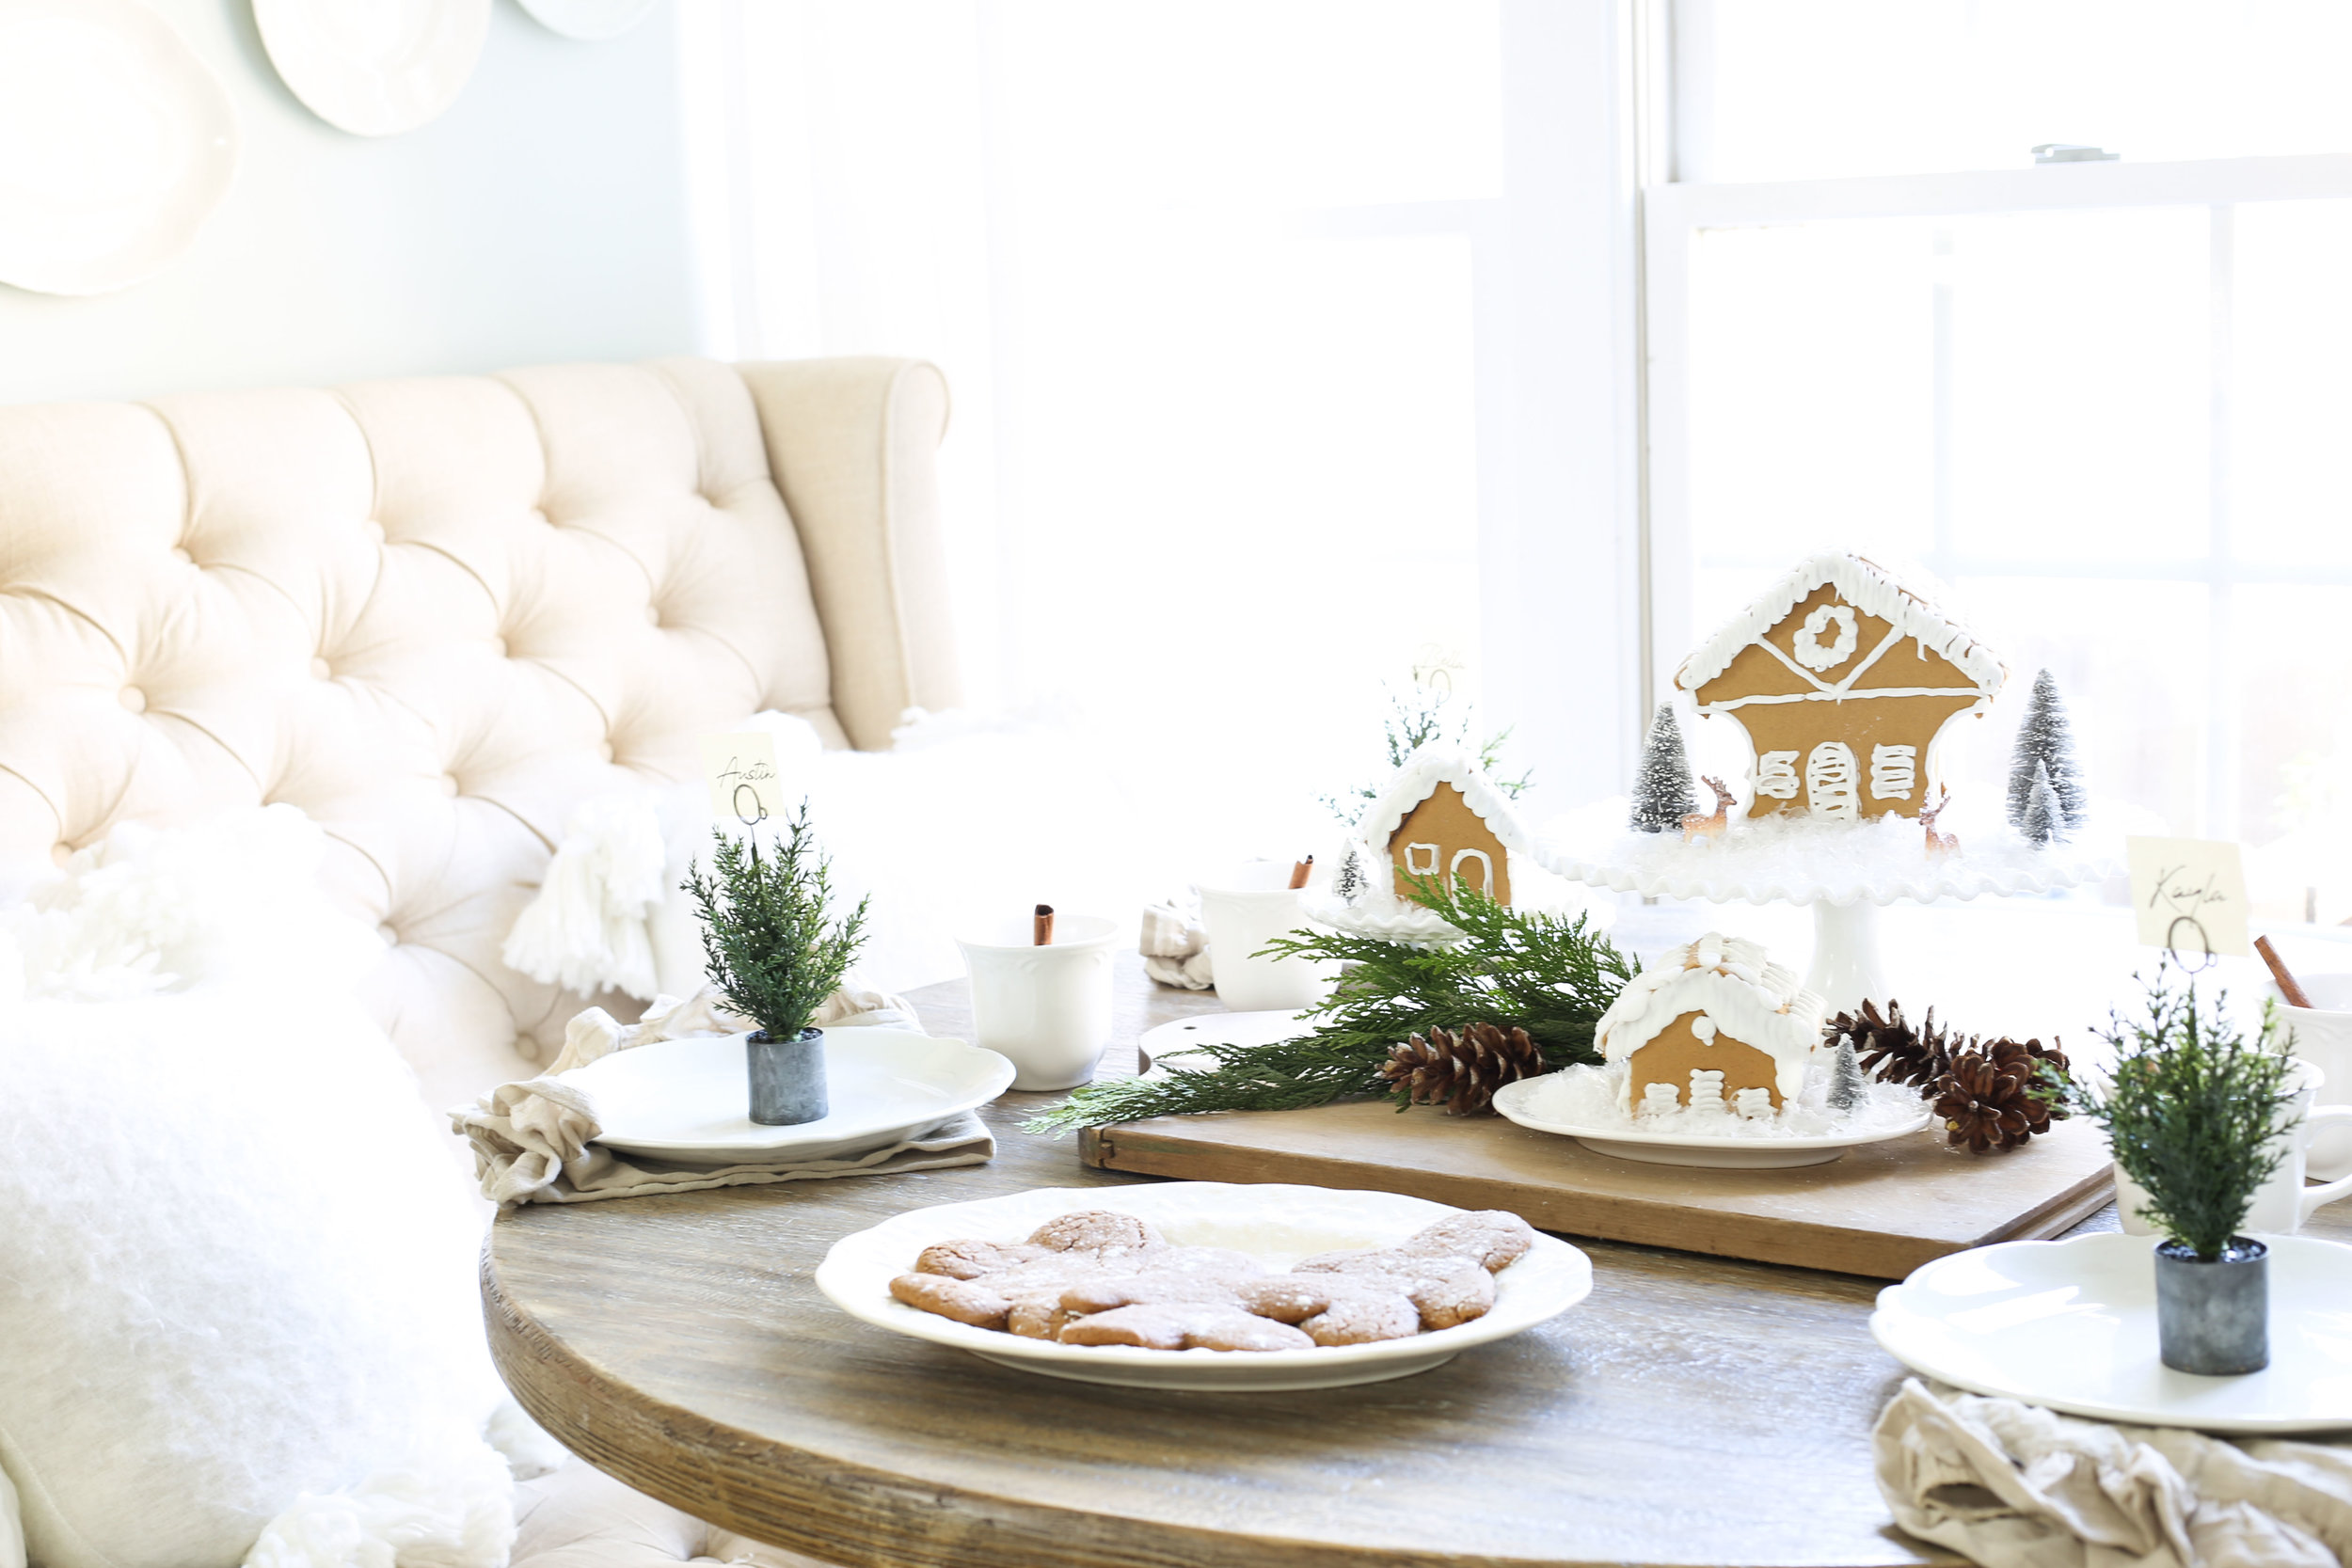 Christmas 2017 Home Tour: Deck The Blogs- Breakfast Nook Table Setting with Gingerbread House Centerpiece- Plum Pretty Decor & Design's Christmas Home Tour